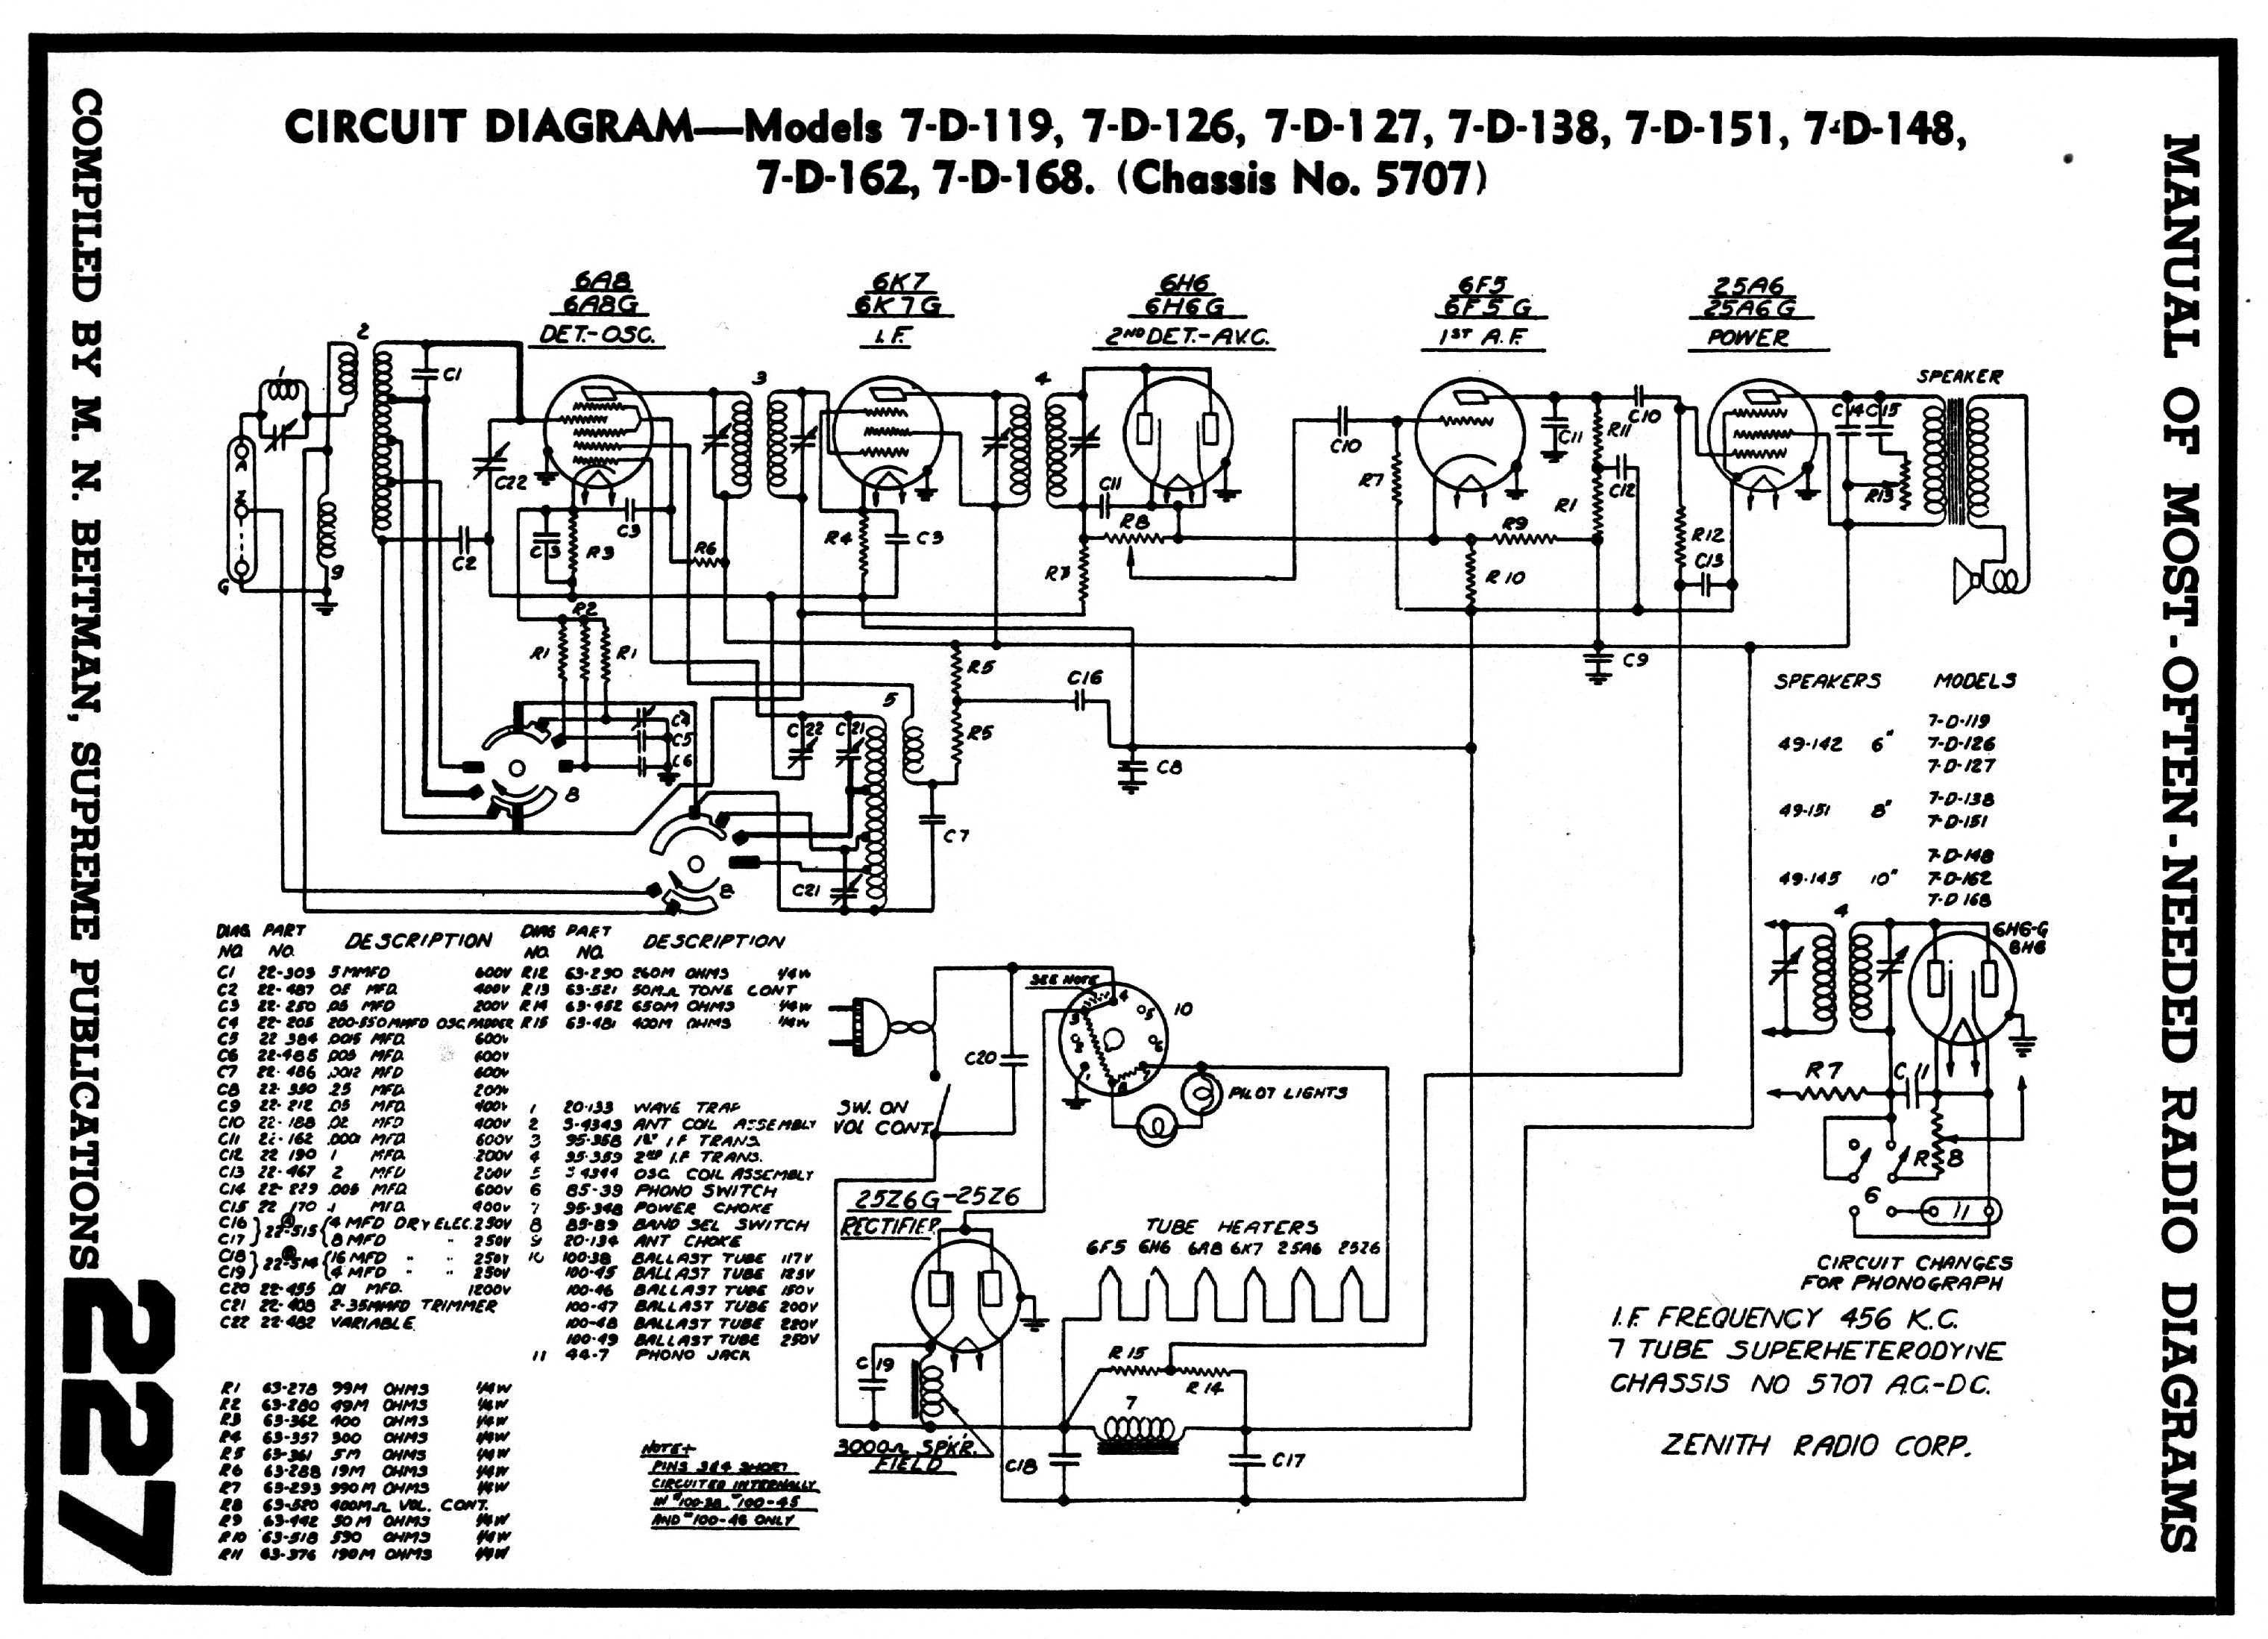 Diagrams And Service Data For Zenith 7 D 162